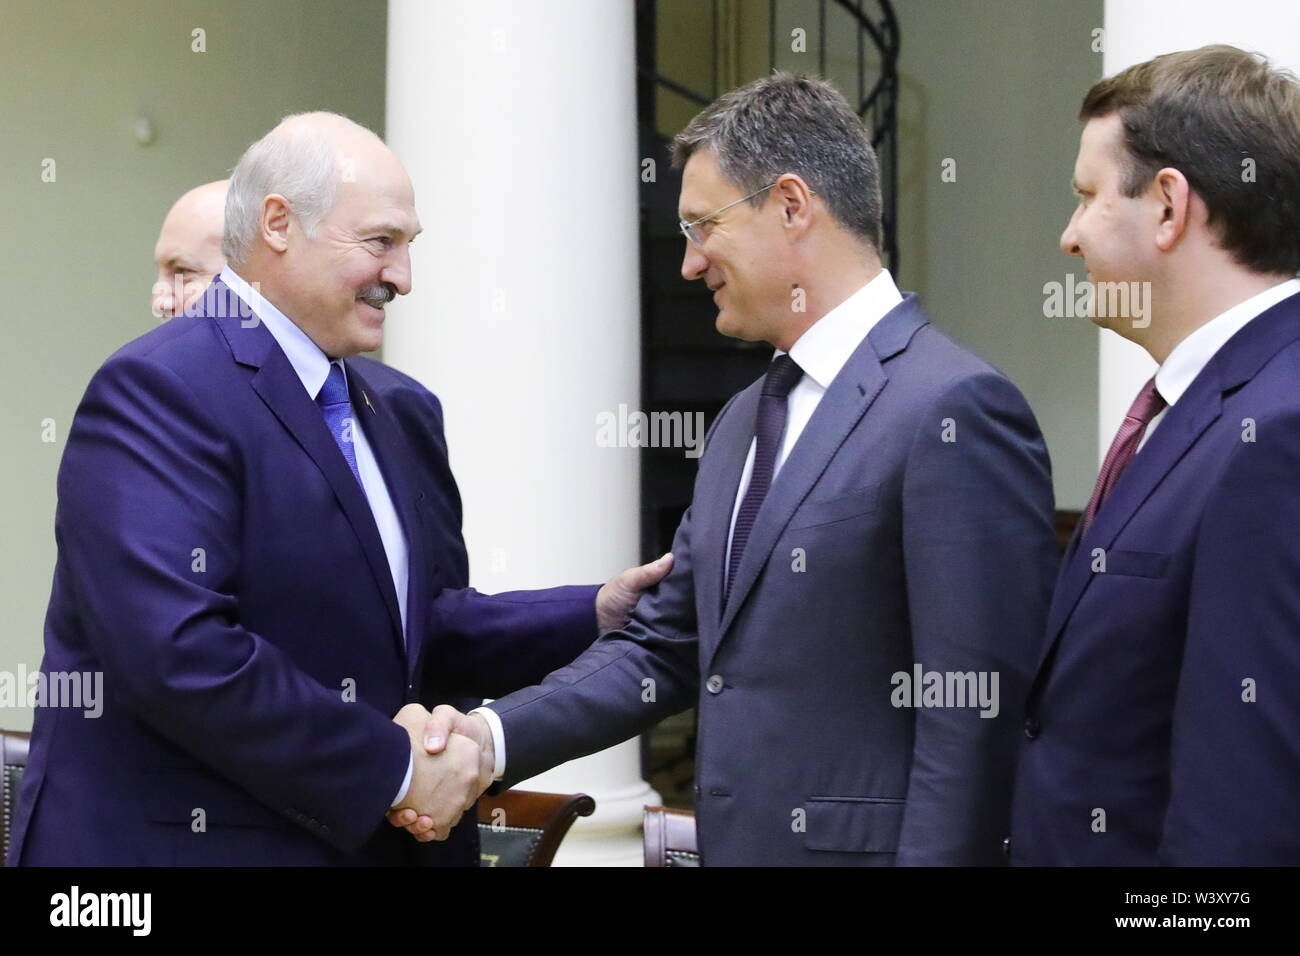 St Petersburg, Russia. 18th July, 2019. ST PETERSBURG, RUSSIA - JULY 18, 2019: Belarus' President Alexander Lukashenko and Russia's Energy Minister Alexander Novak shake hands as Russia's Economic Development Minister Maxim Oreshkin (L-R) looks on during a meeting with Russia's President Vladimir Putin during a meeting at Tauride Palace. Mikhail Klimentyev/Russian Presidential Press and Information Office/TASS Credit: ITAR-TASS News Agency/Alamy Live News - Stock Image